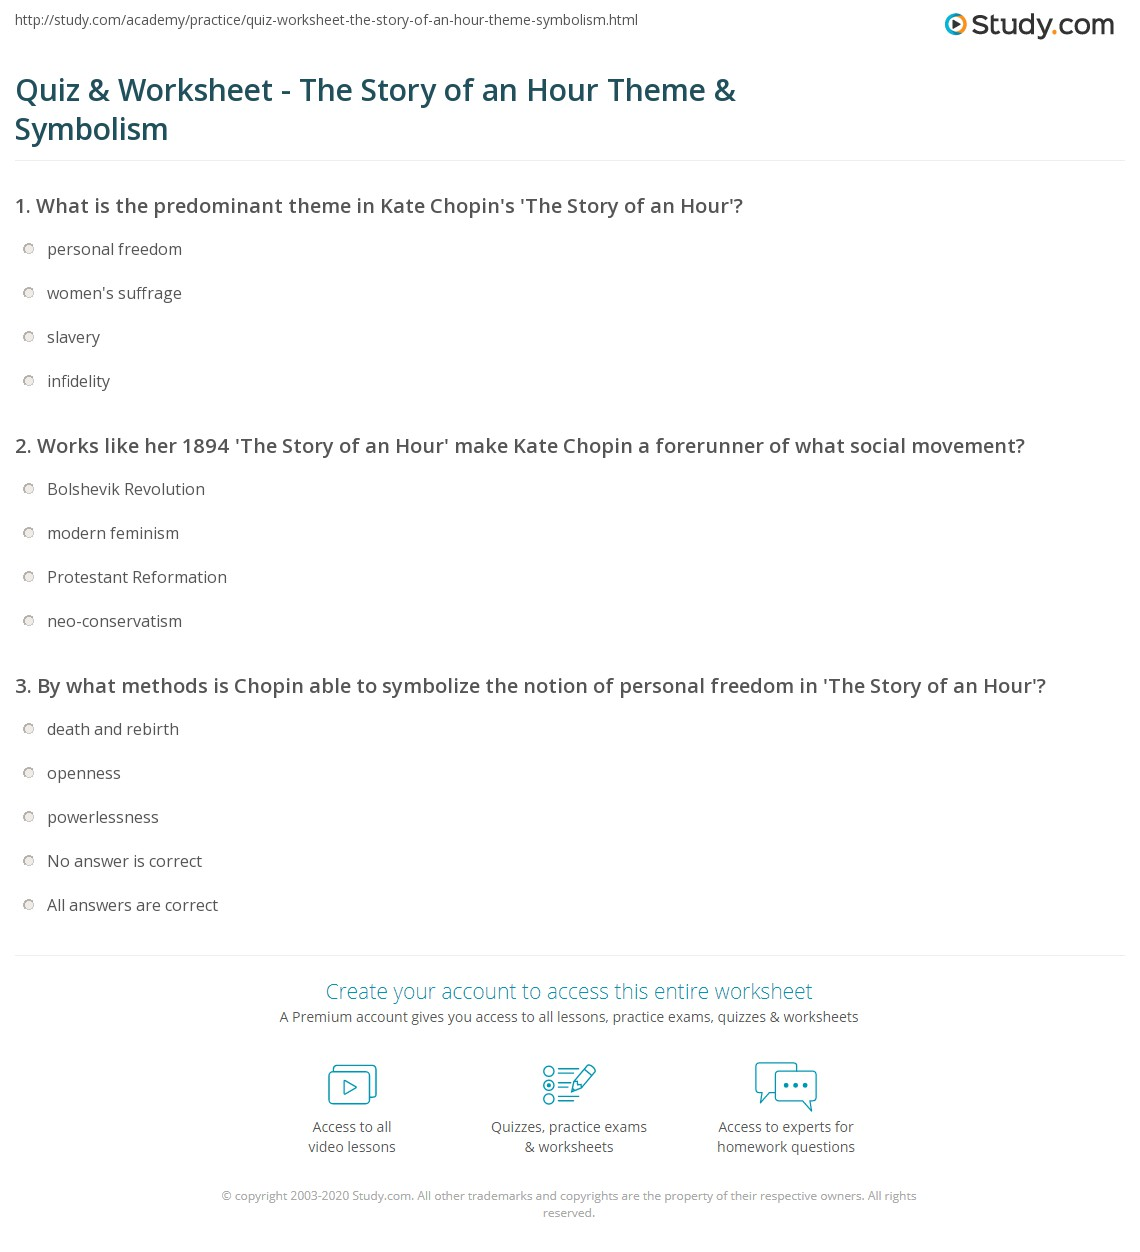 quiz worksheet the story of an hour theme symbolism study com print the story of an hour theme symbolism worksheet